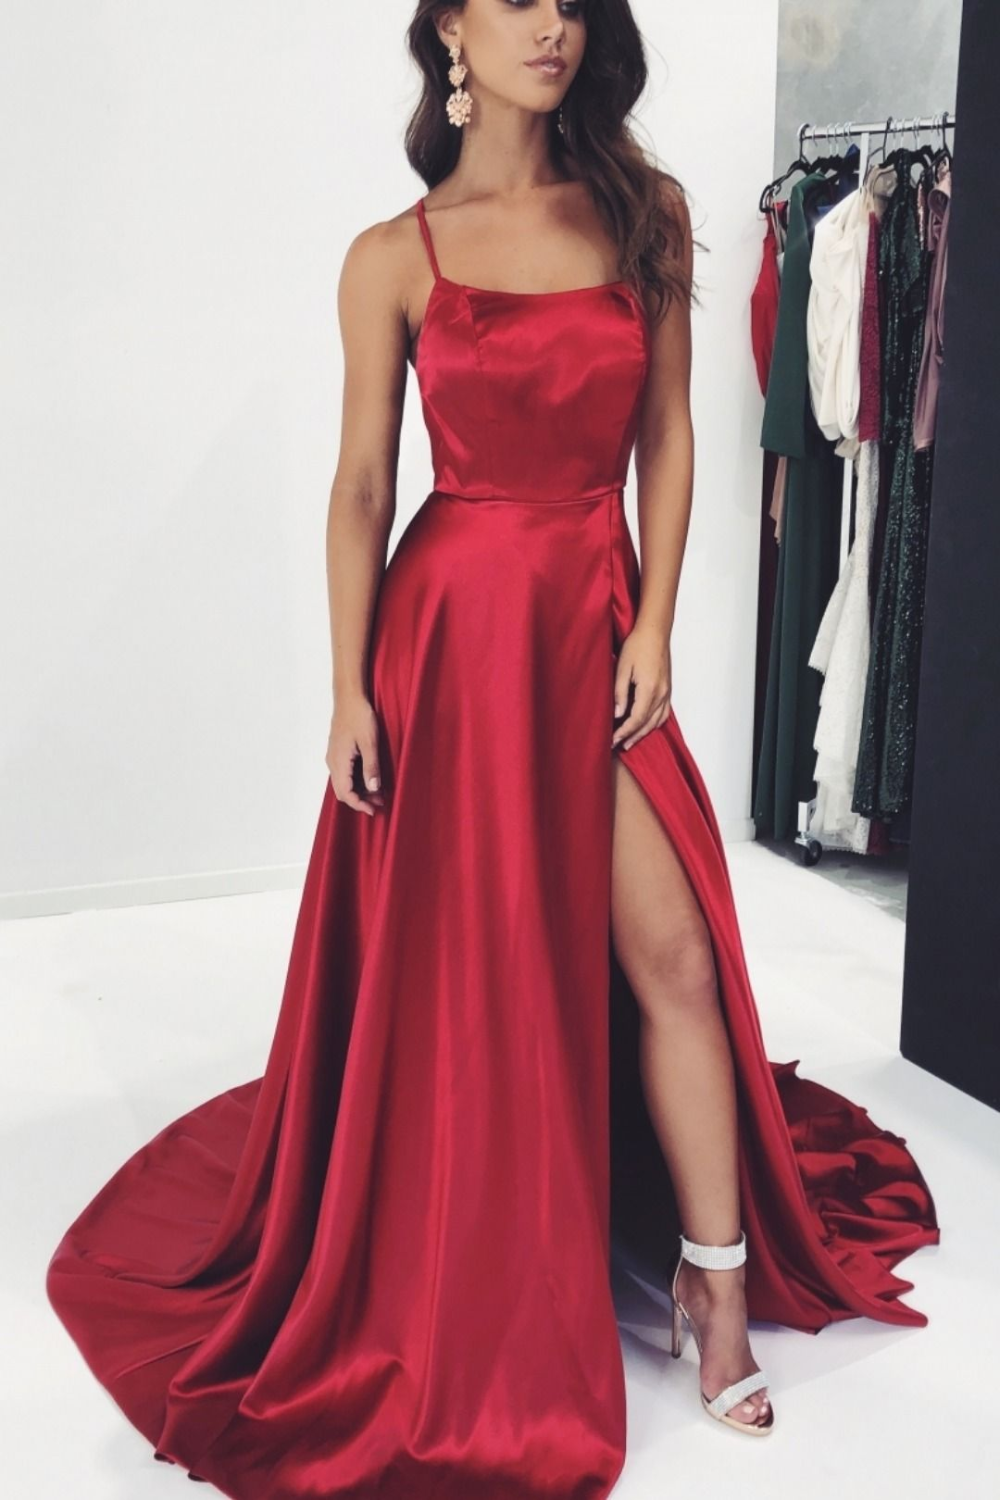 SGD016 Aline Long Prom Dress, Popular Dance Dress ,Fashion Wedding Party Dress - Prom night dress, Red prom dress, Satin prom dress, Slit dress prom, Simple prom dress long, Evening dresses long - inch (end of arm) 4, Delivery time within1520days, this cost is paid for prior shipping and sewers who would like to work extra time to finish this dress   Normal time Within 25 days (From May to Dec)  Around 30 days (From Jan to April), it's busy season together with spring festival holiday, so produce time will be long  5, Packing in order to save your shipping cost, each dress will be packed tightly with water proof bag   6, Shipping by Fedex or some special airline  7, Payment Paypal, bank transfer, western union, money gram and so on  8, Return Policy HOTLADY prom dress  We will accept returns if dresses have quality problems, wrong delivery time, we also hold the right to refuse any unreasonable returns, such as wrong size you gave us or standard size which we made right, but we offer free modify   Please see following for the list of quality issues that are fully refundable for  Wrong Size, Wrong Colour, Wrong style, Damaged dress 100% Refund or remake one or return 50% payment to you, you keep the dress  In order for your return or exchange to be accepted, please carefully follow our guide  1  Contact us within 2 days of receiving the dress (please let us know if you have some exceptional case in advance)  2  Provide us with photos of the dress, to show evidence of damage or bad quality, this also applies for the size, or incorrect style and colour etc   3  The returned item must be in perfect condition (as new), you can try the dress on, but be sure not to stretch it or make any dirty marks, otherwise it will not be accepted   4  The tracking number of the returned item must be provided together with the reference code issued   5  If you prefer to exchange dresses, then a price difference will be charged if more expensive   6  You are required to pay for the shipp